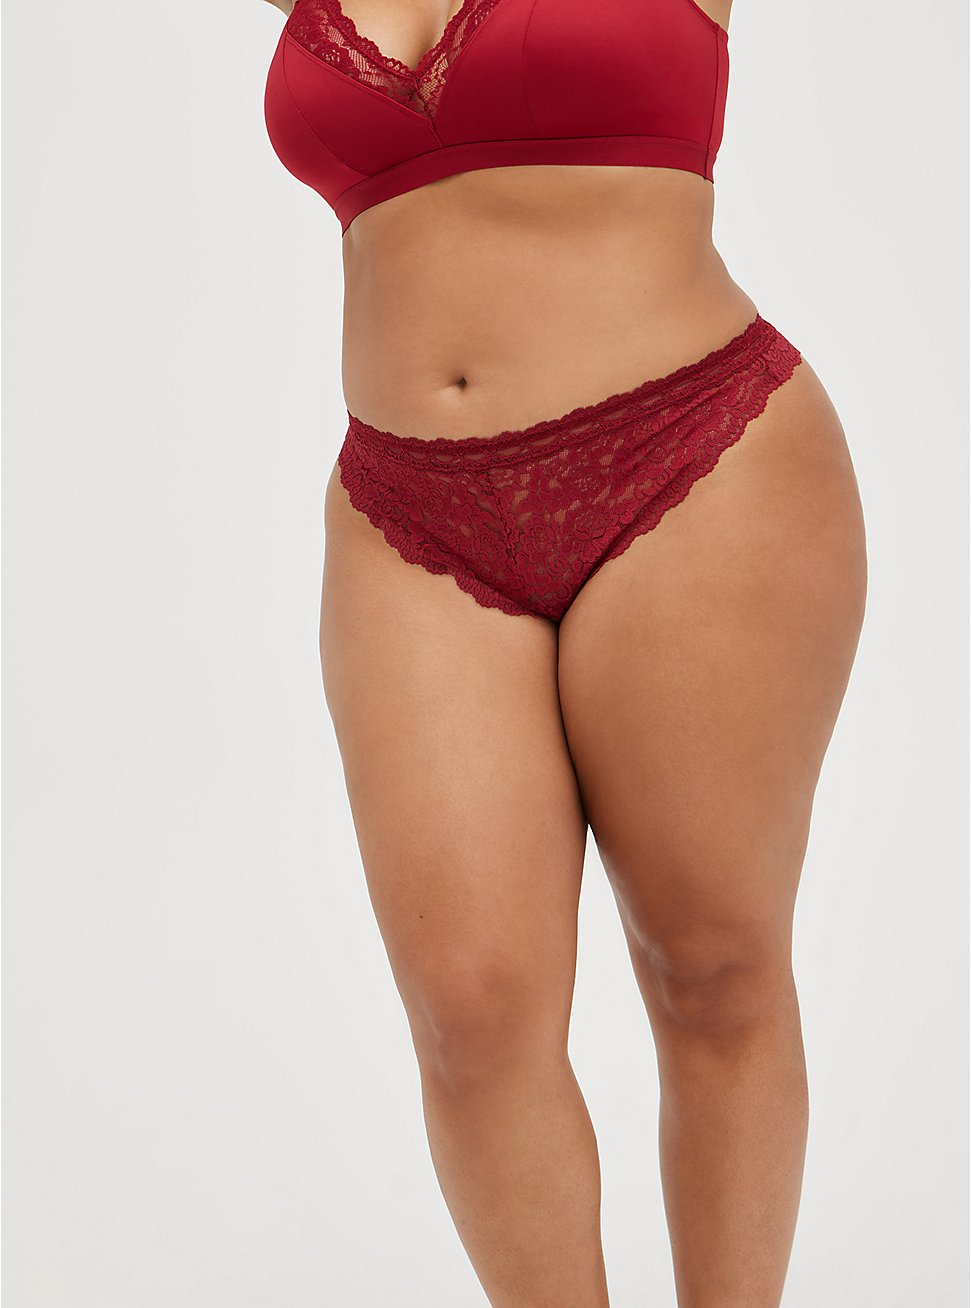 Open Gusset Thong Panty - Lace Red, BIKING RED, hi-res